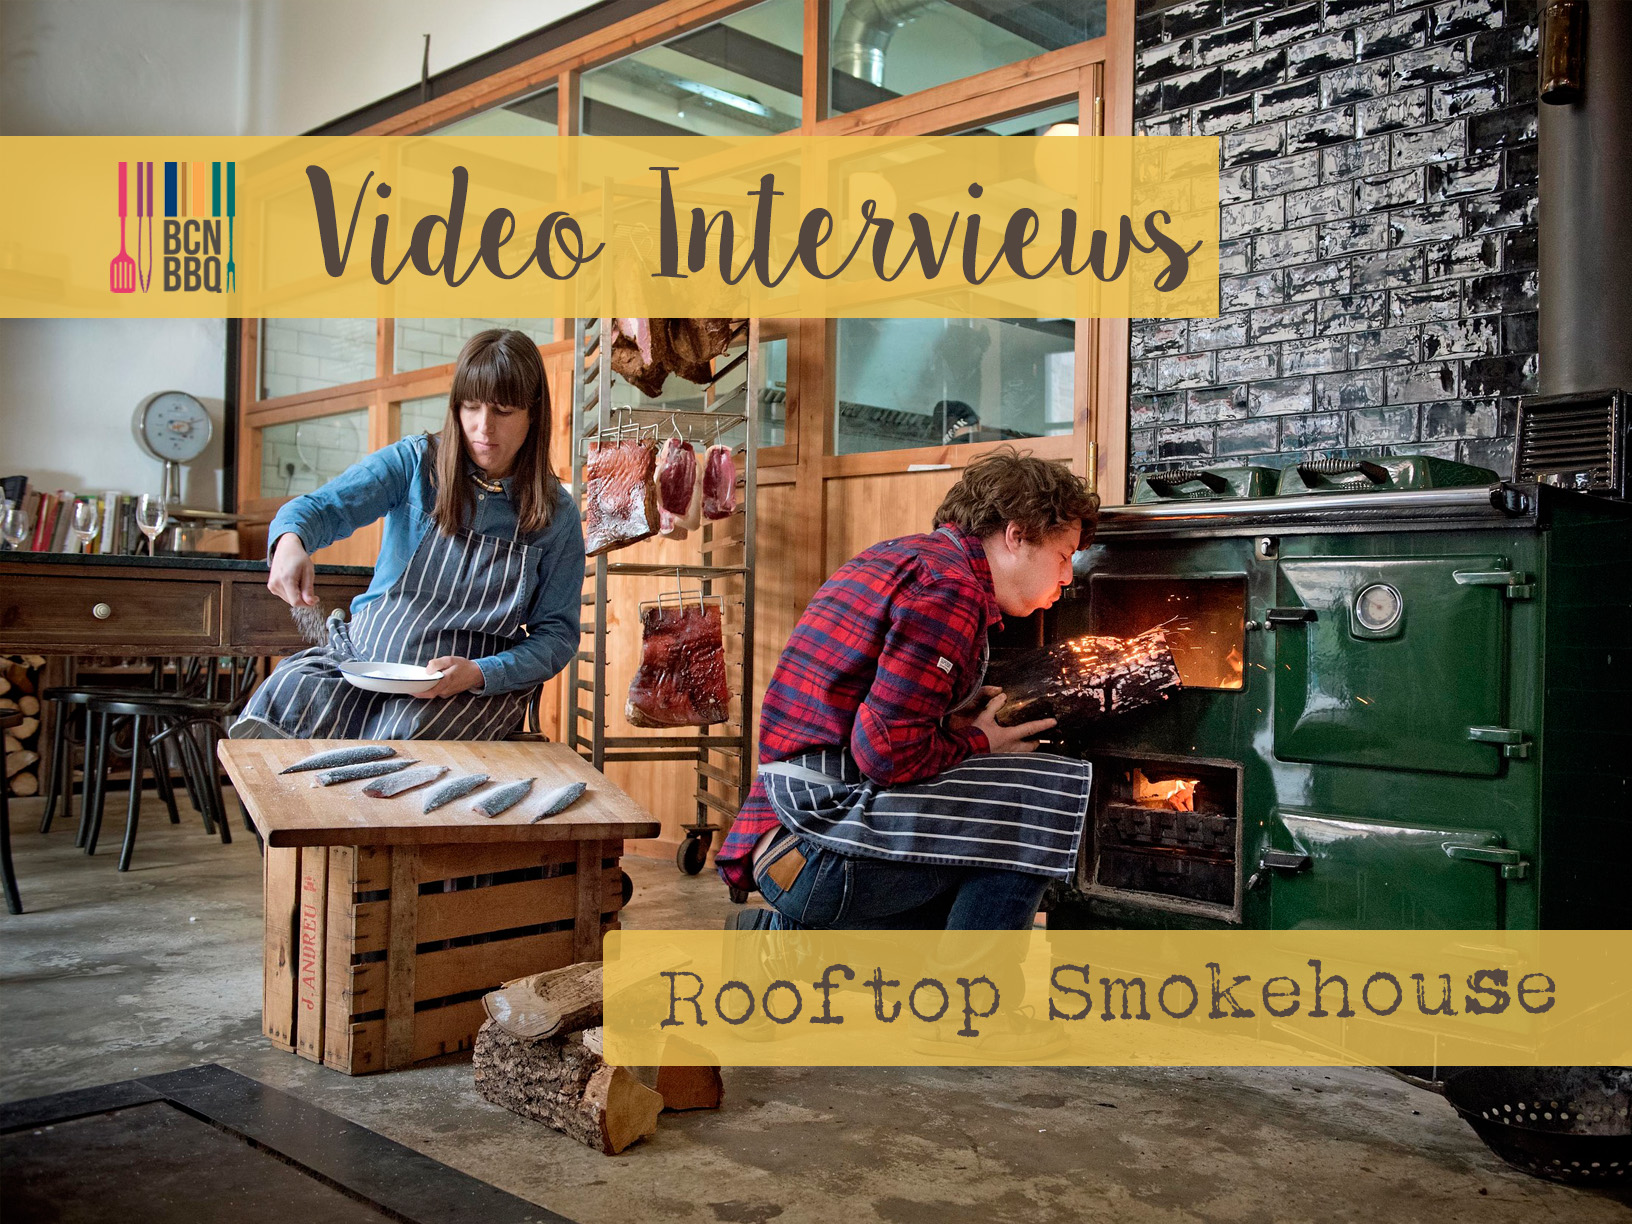 Rooftop Smokehouse Video Interviews - photo by Rooftopsmokehouse.com